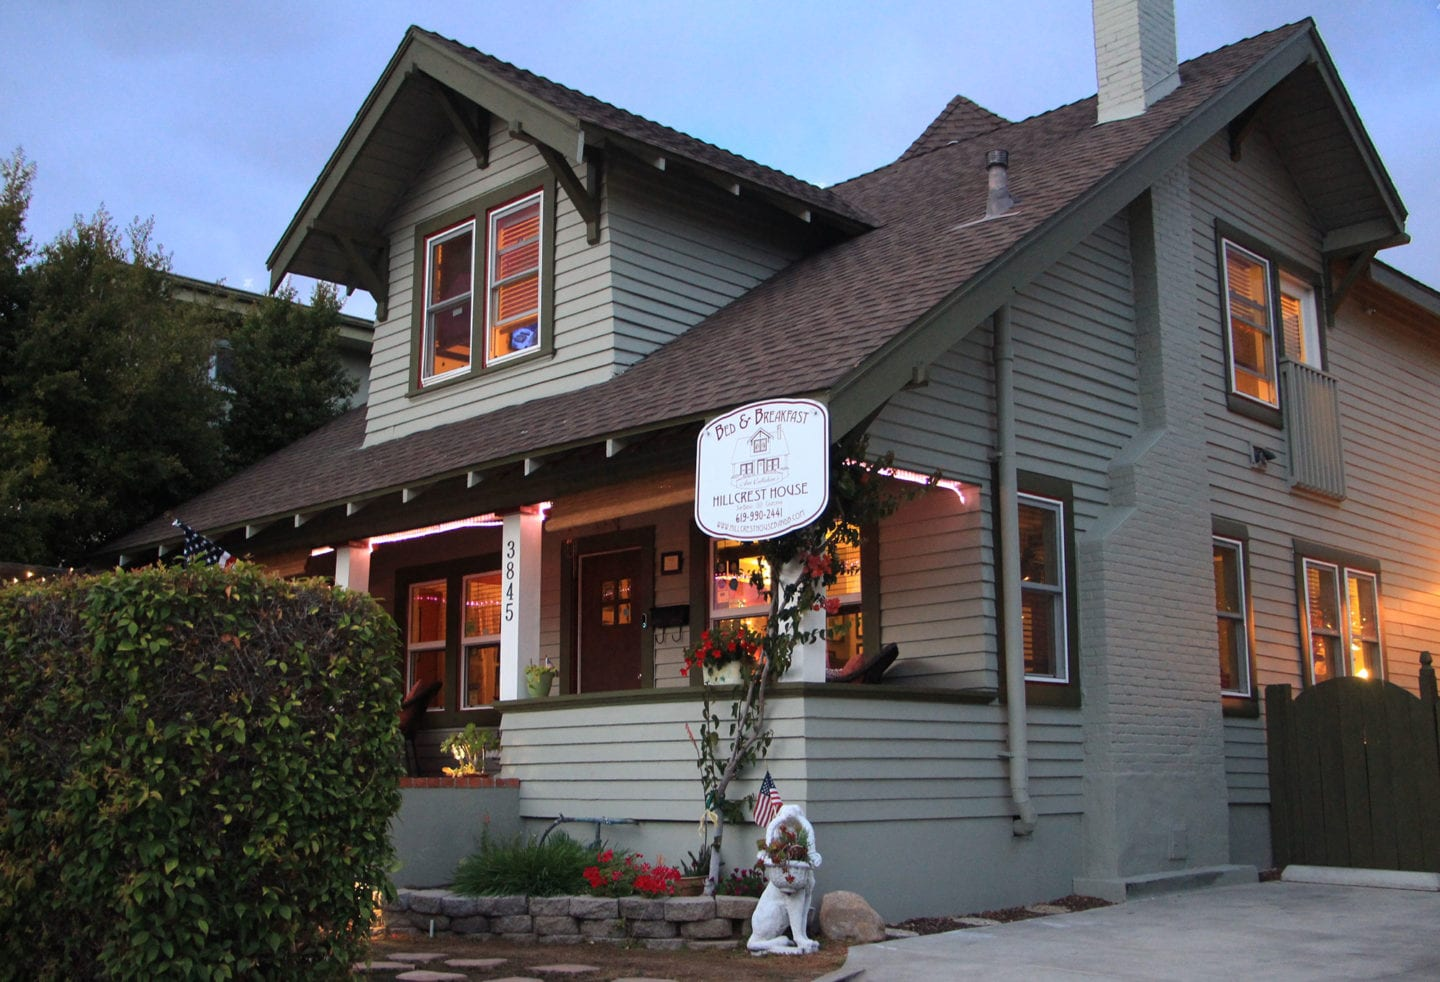 Hillcrest House Bed & Breakfast Inn